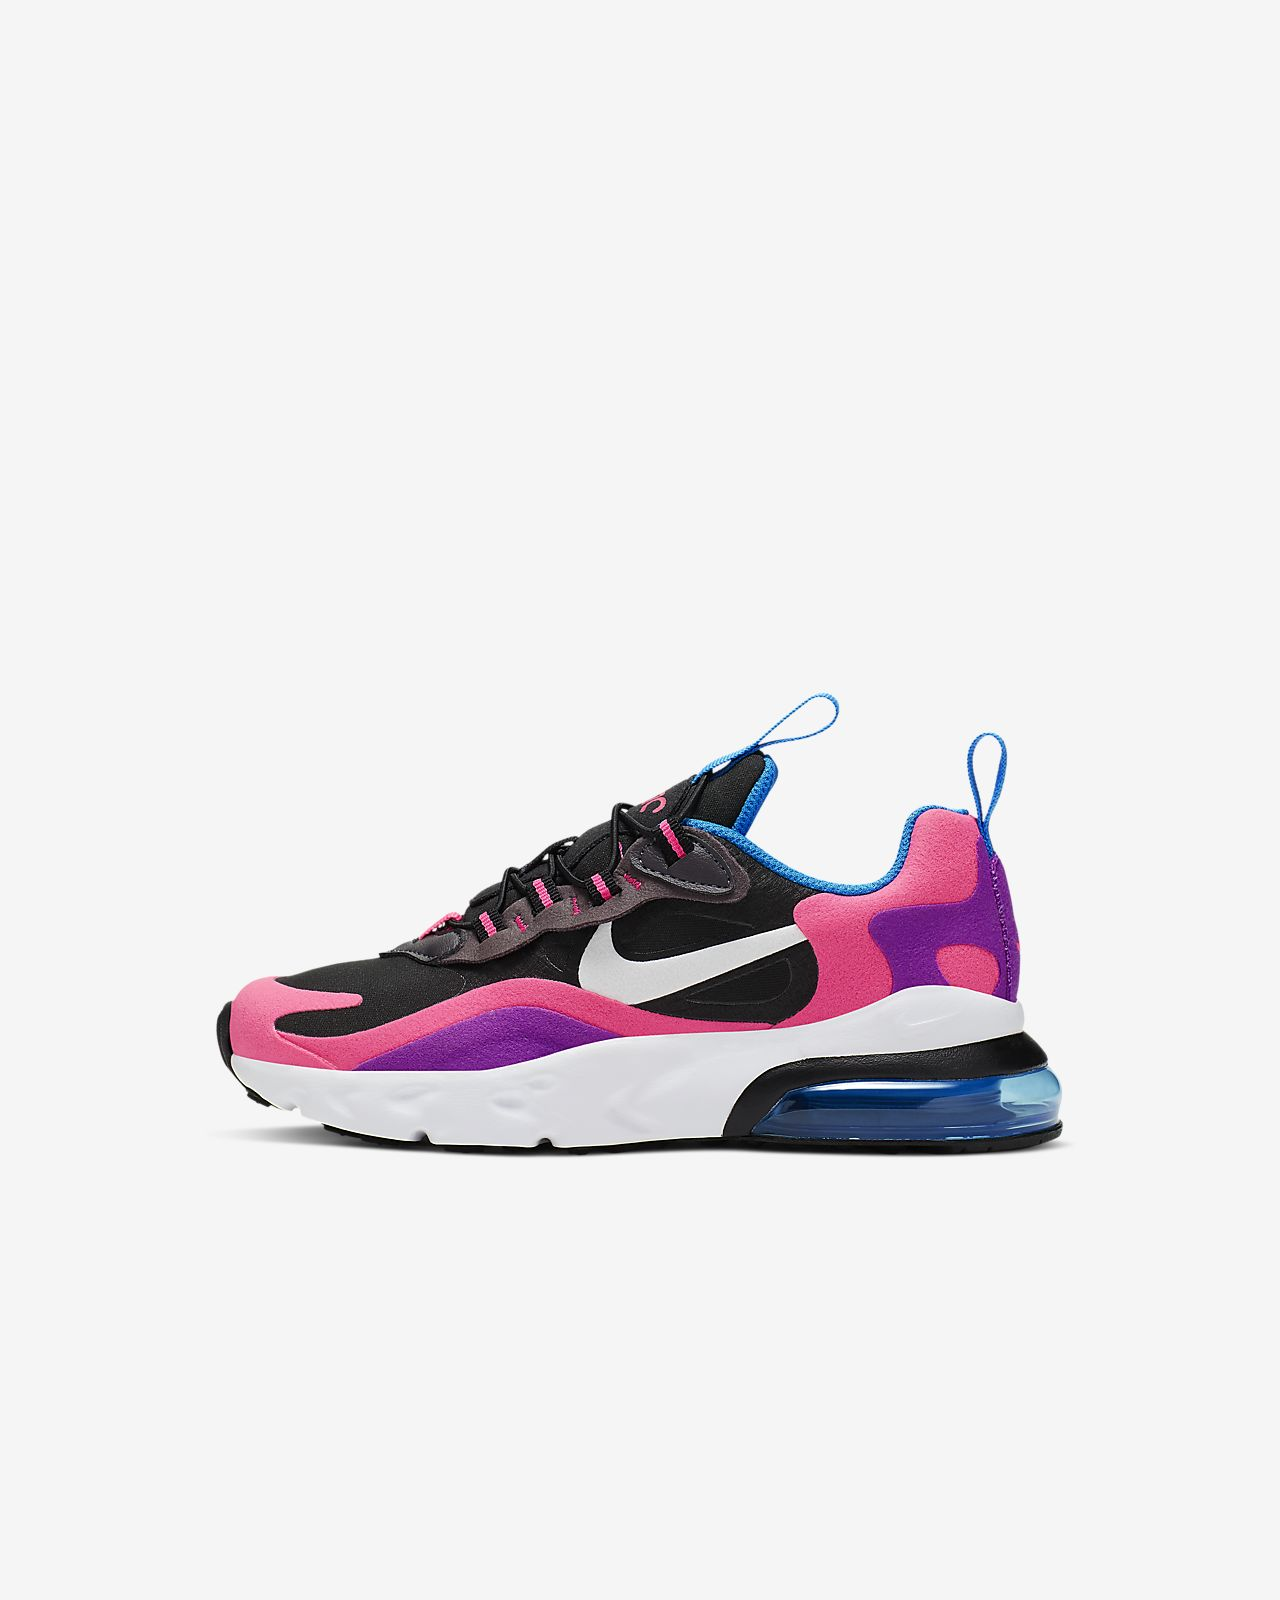 classic fit stable quality shades of Nike Air Max 270 RT Schuh für jüngere Kinder